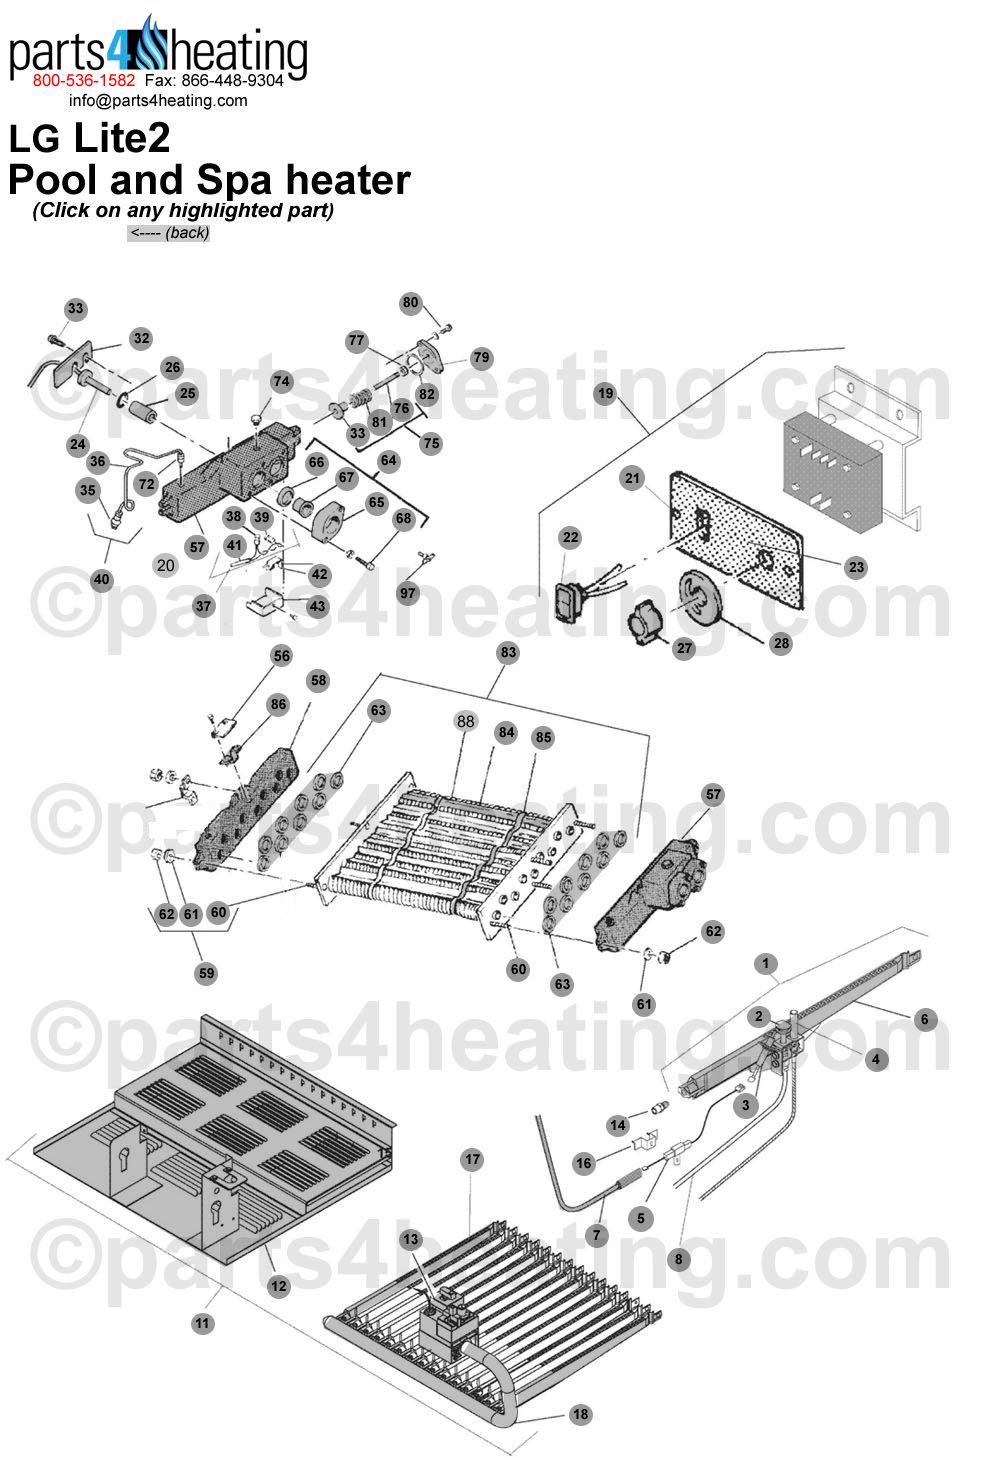 99 Mercury Cougar Transmission Diagram Wiring And Engine 2000 Mystique Fuse Box Besides 201703454325 Further Schematics I Furthermore 1999 Lincoln Navigator